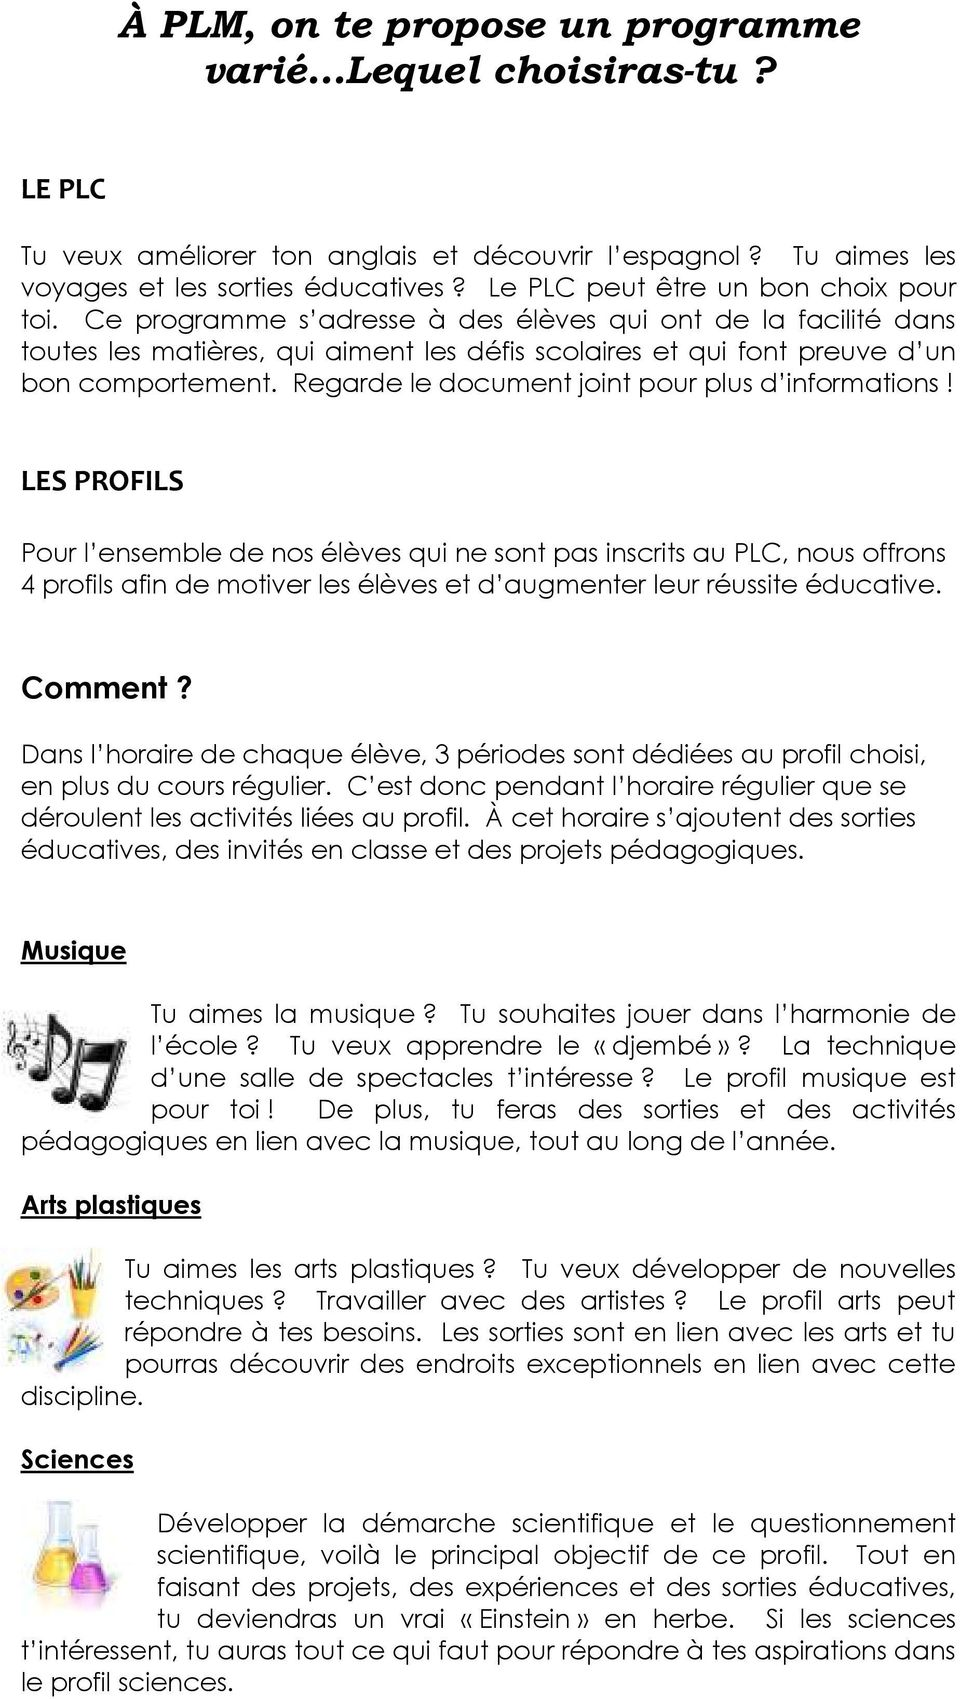 Regarde le document joint pour plus d informations!